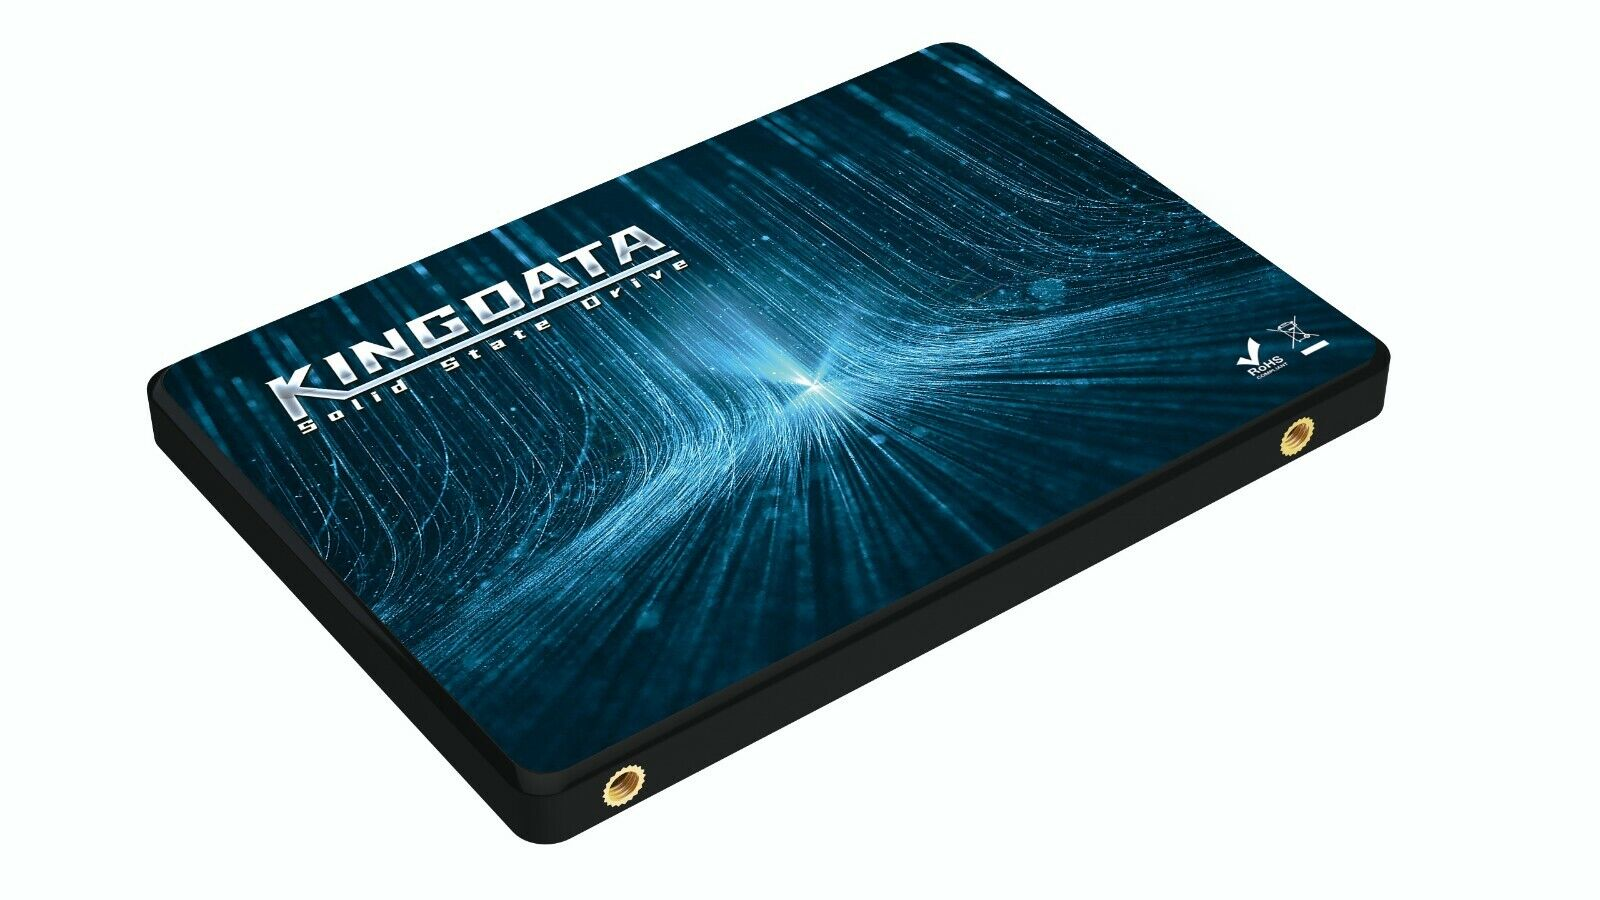 2.5 Inch SSD 120GB 240GB 480GB 1TB Desktop Laptop Internal Solid State Drive Lot. Buy it now for 23.49